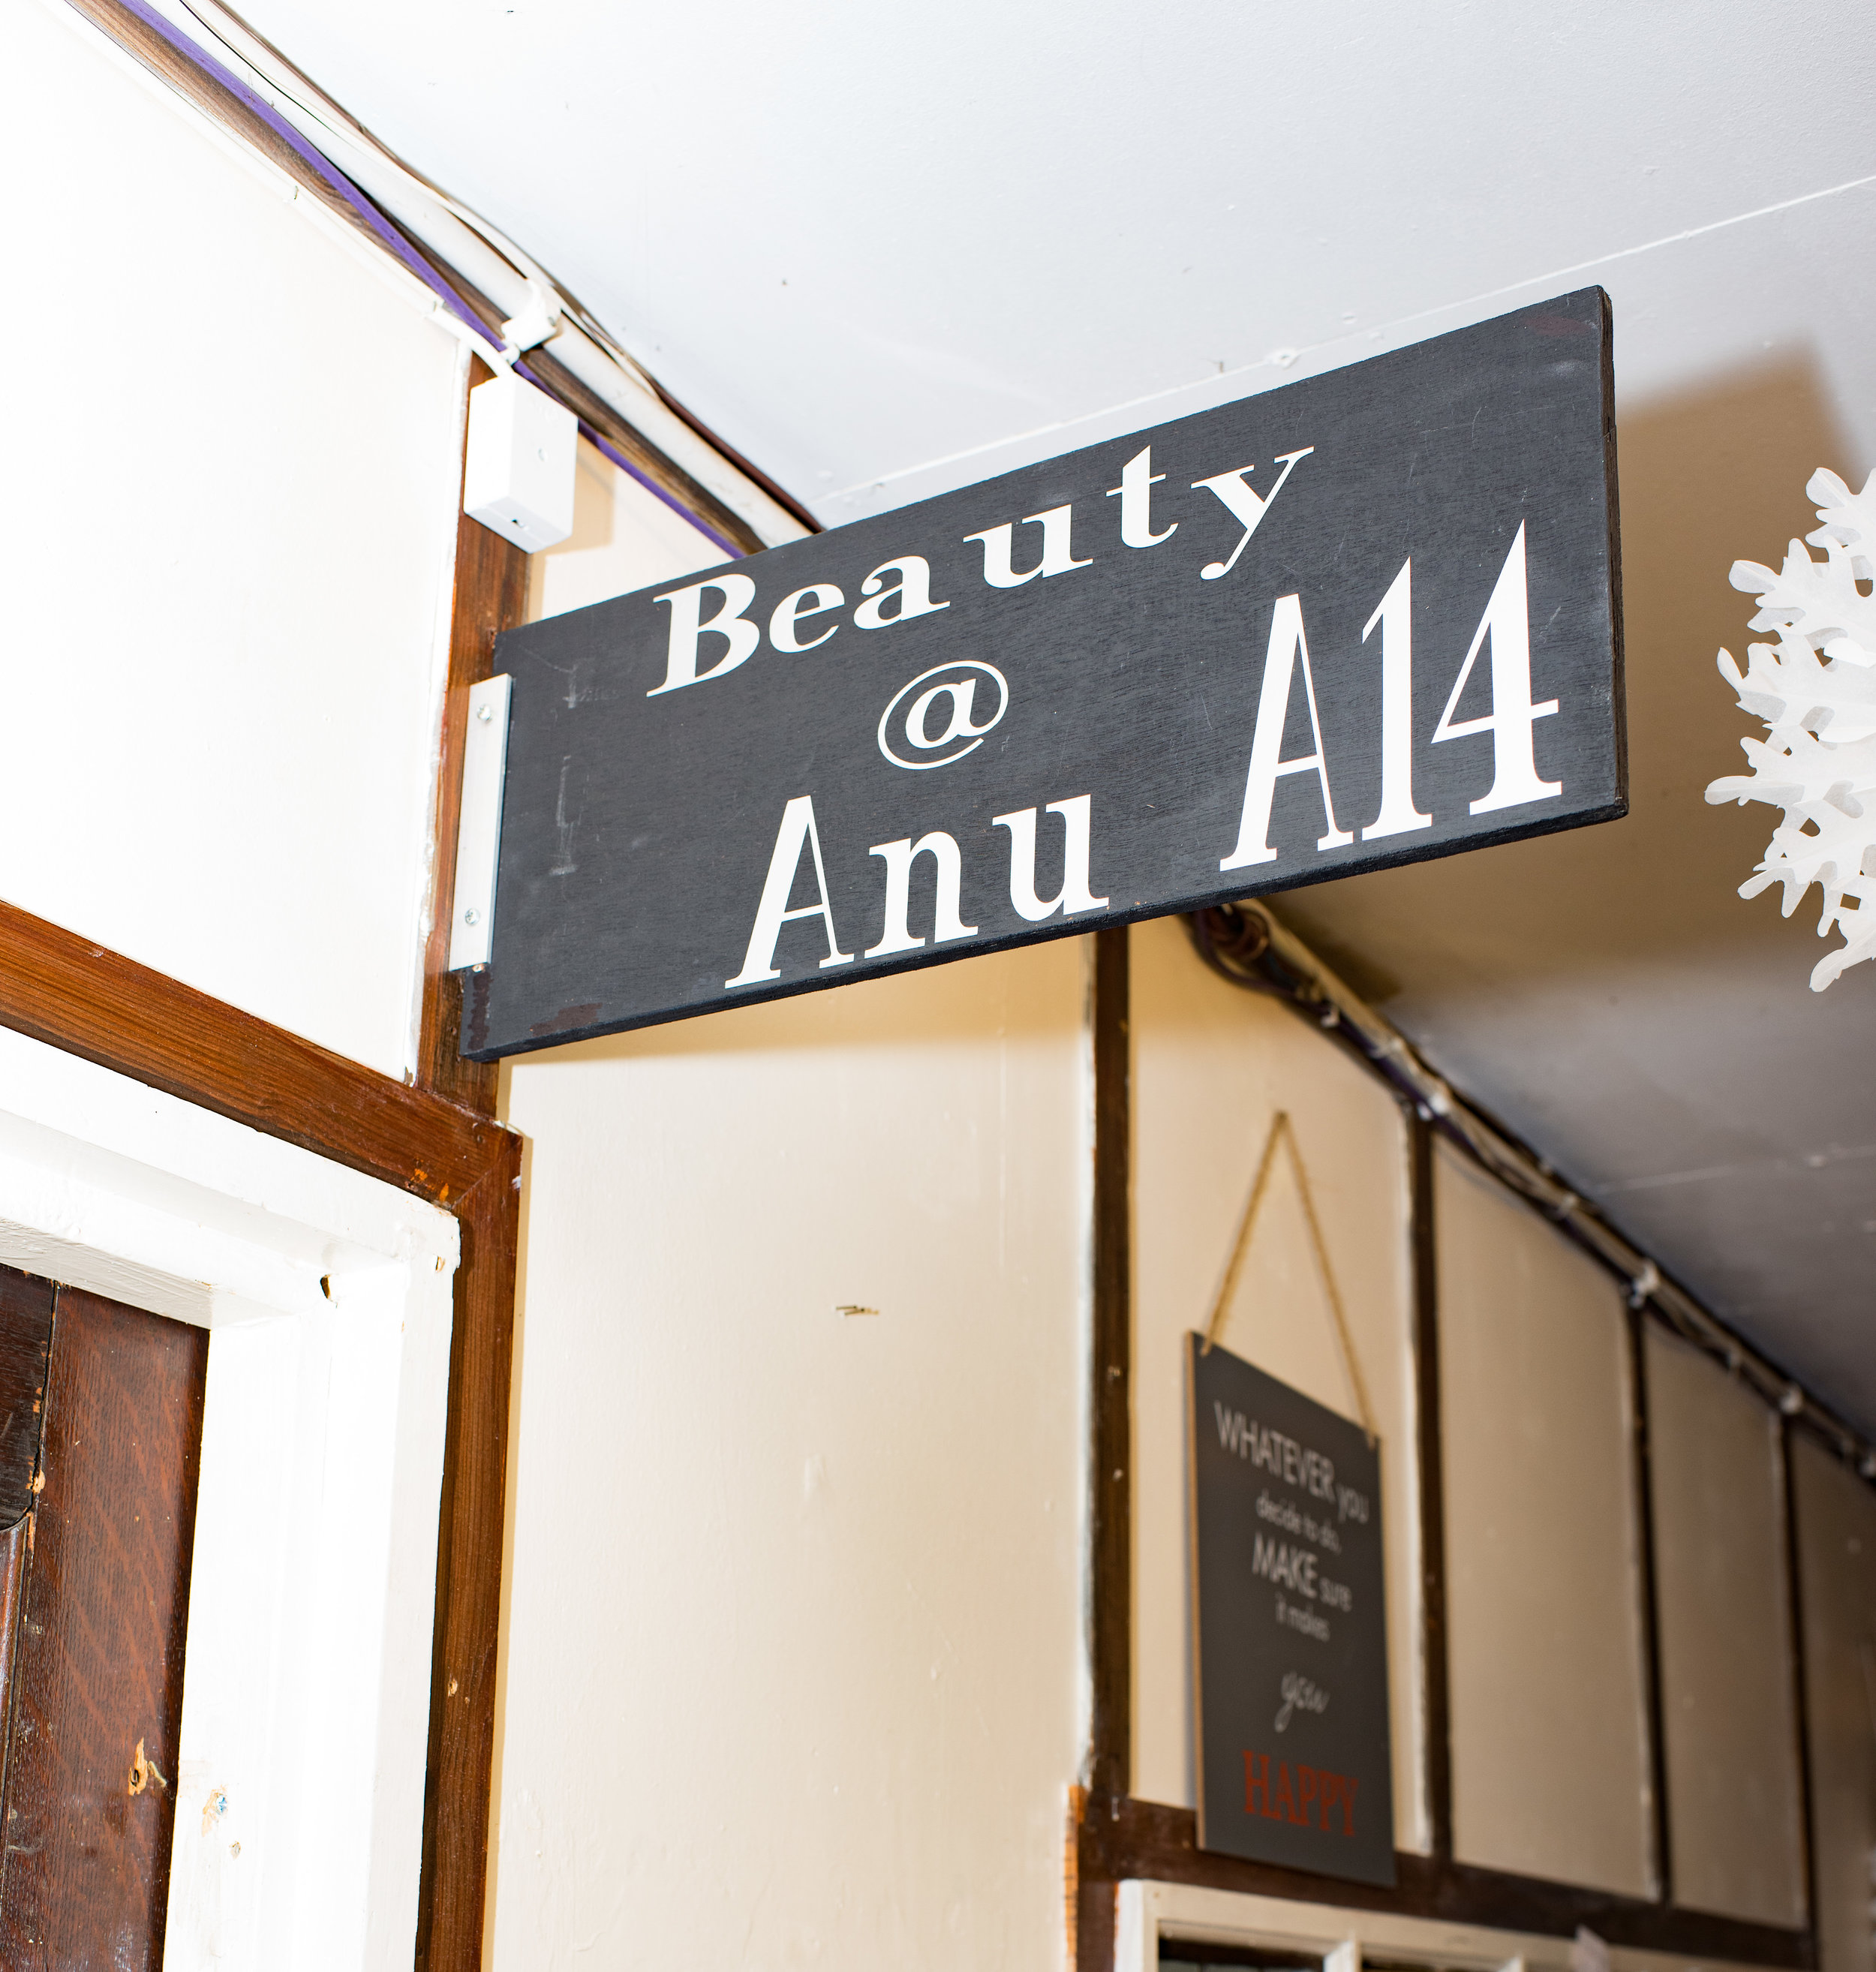 Beauty@ANU   Anu is a highly trained beautician and massage therapist offering everything from threading to eye brow tinting and indian head massage to full body massage all at very reasonable prices.